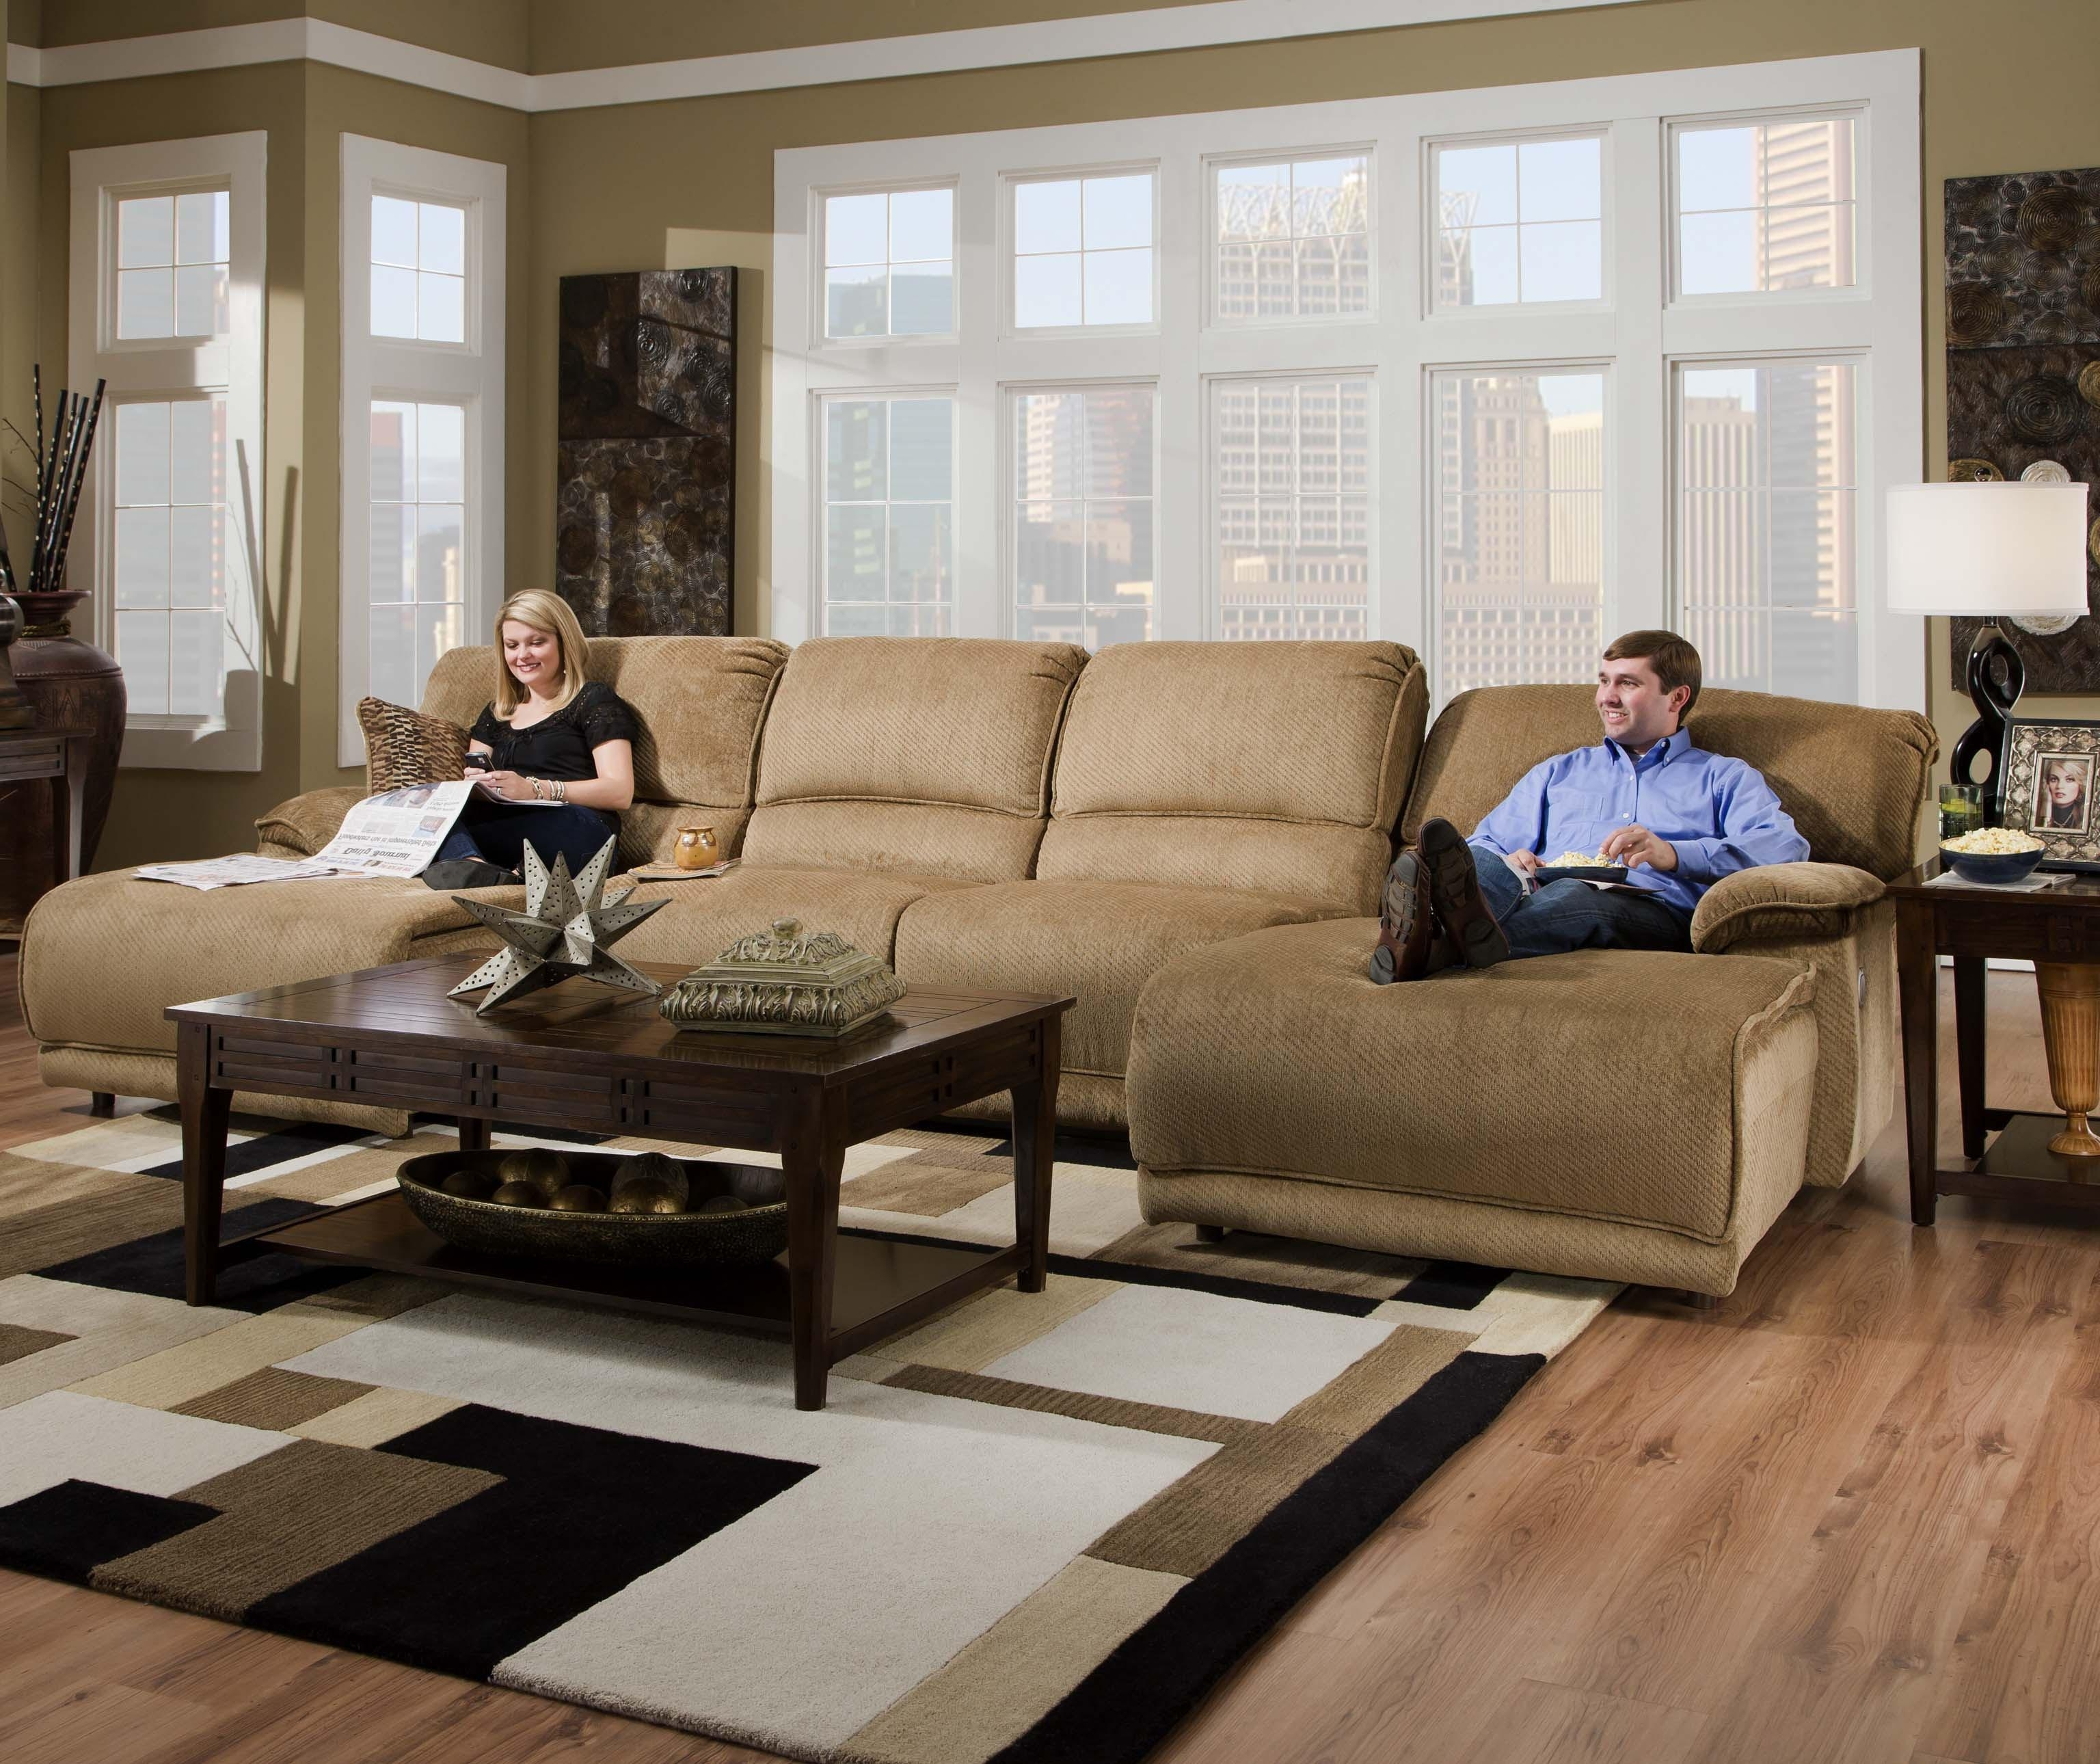 Most Recent Sectionals With Chaise And Recliner In Reclining Sectional Sofas For Small Spaces Cheap Living Room Sets (View 8 of 15)